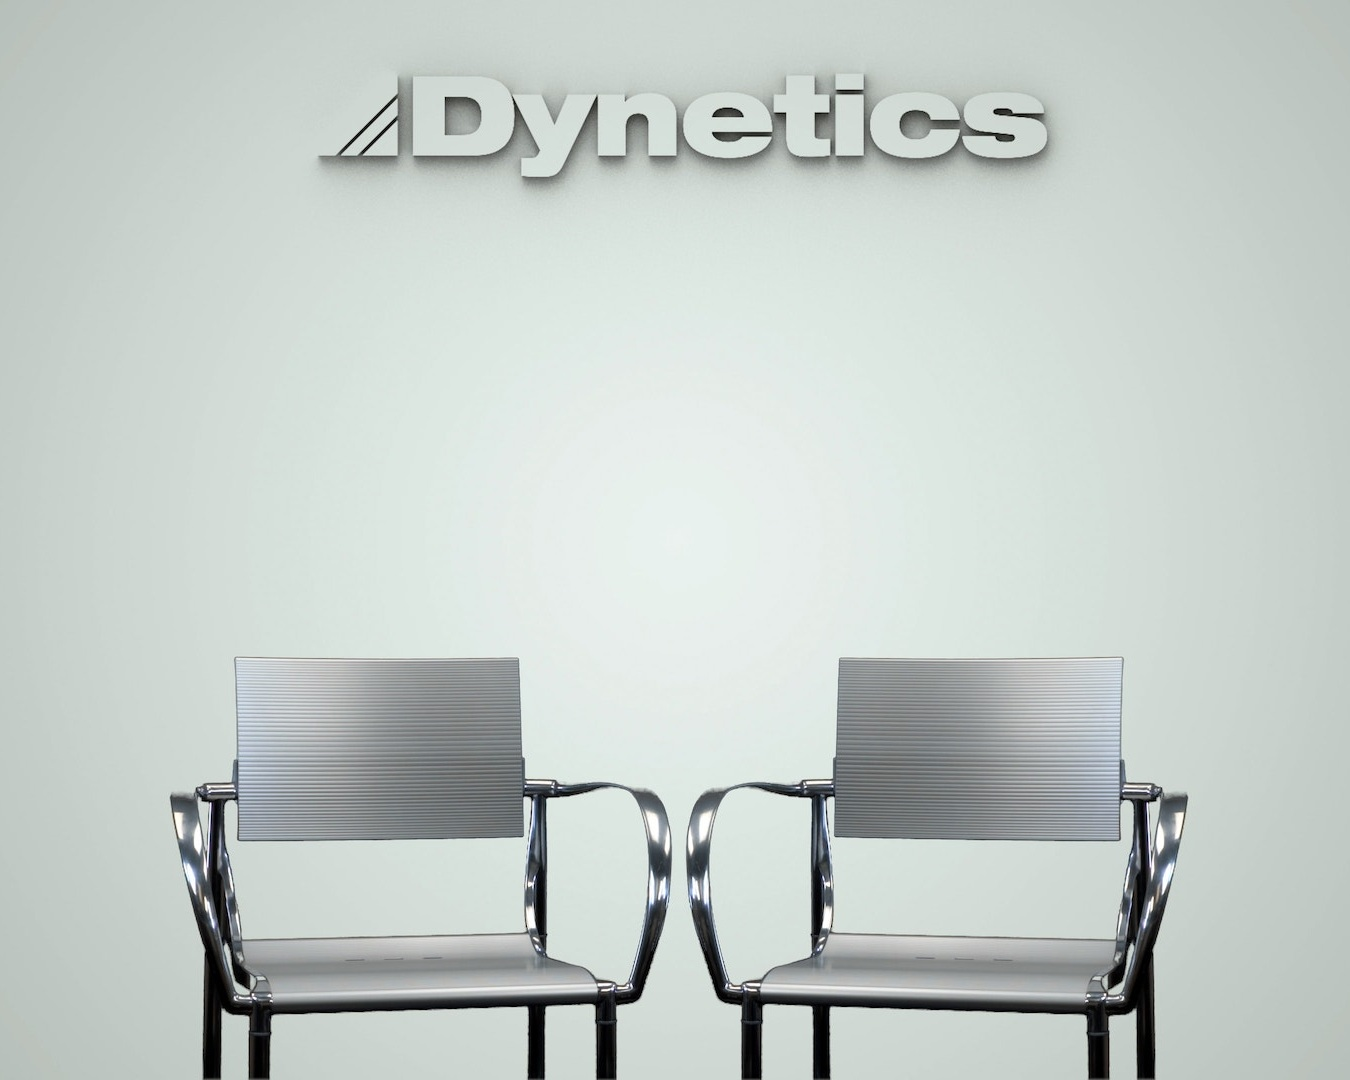 Listen to what your Dynetics team is saying. - Check out these interviews with people around Dynetics to help you understand the inner workings of your Dynetics family.